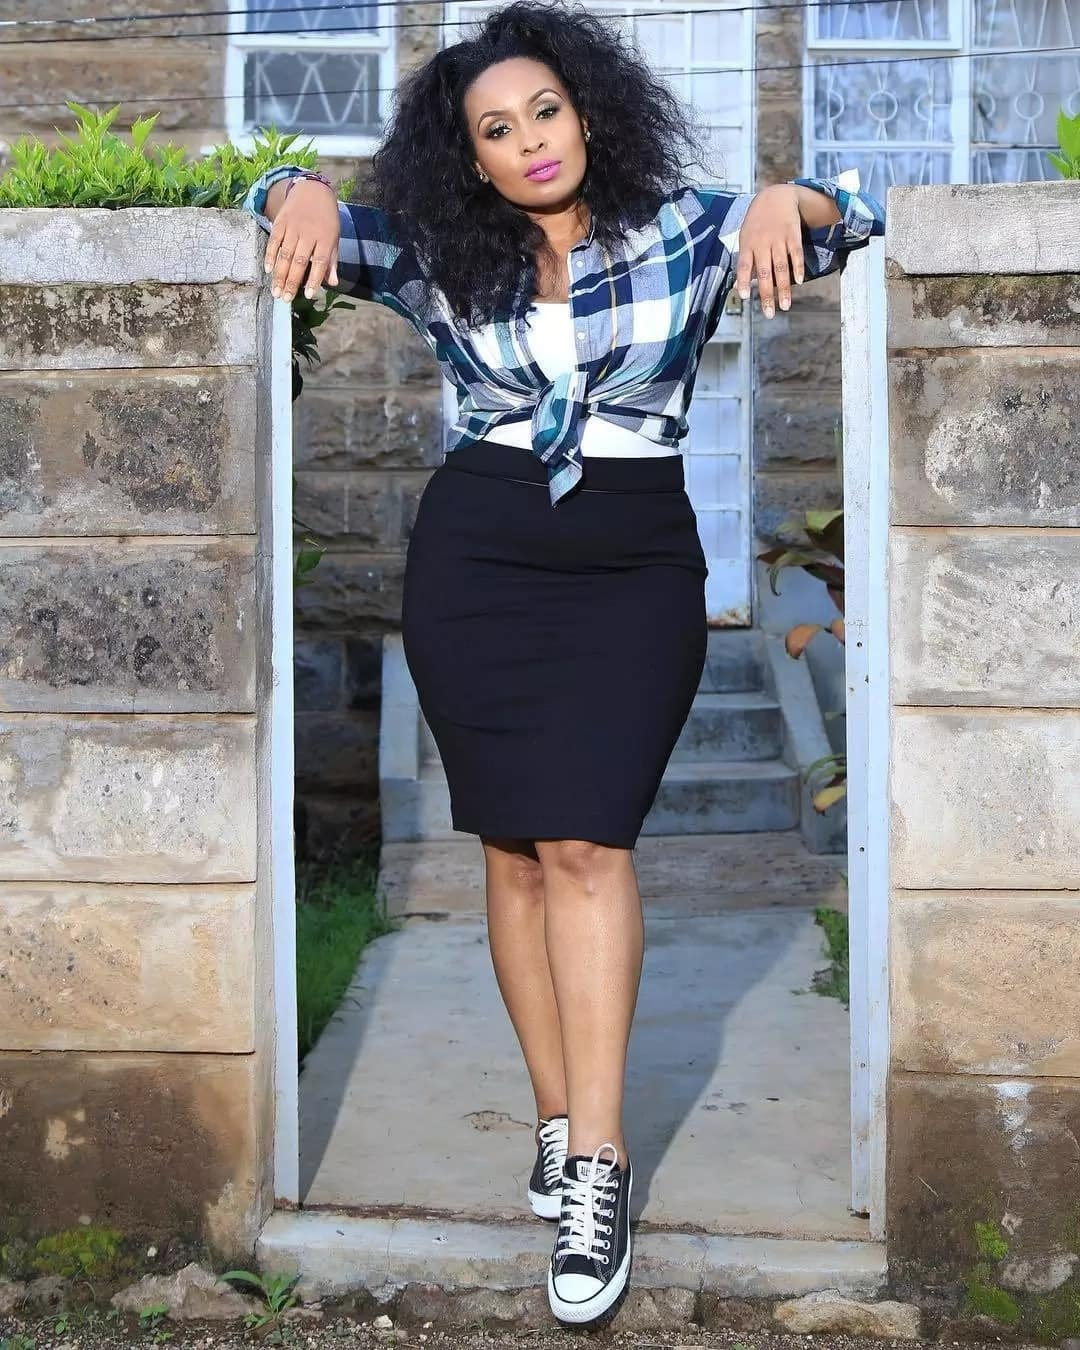 17 captivating photos of the ever-green Sheila Mwanyigha which will leave you guessing her age